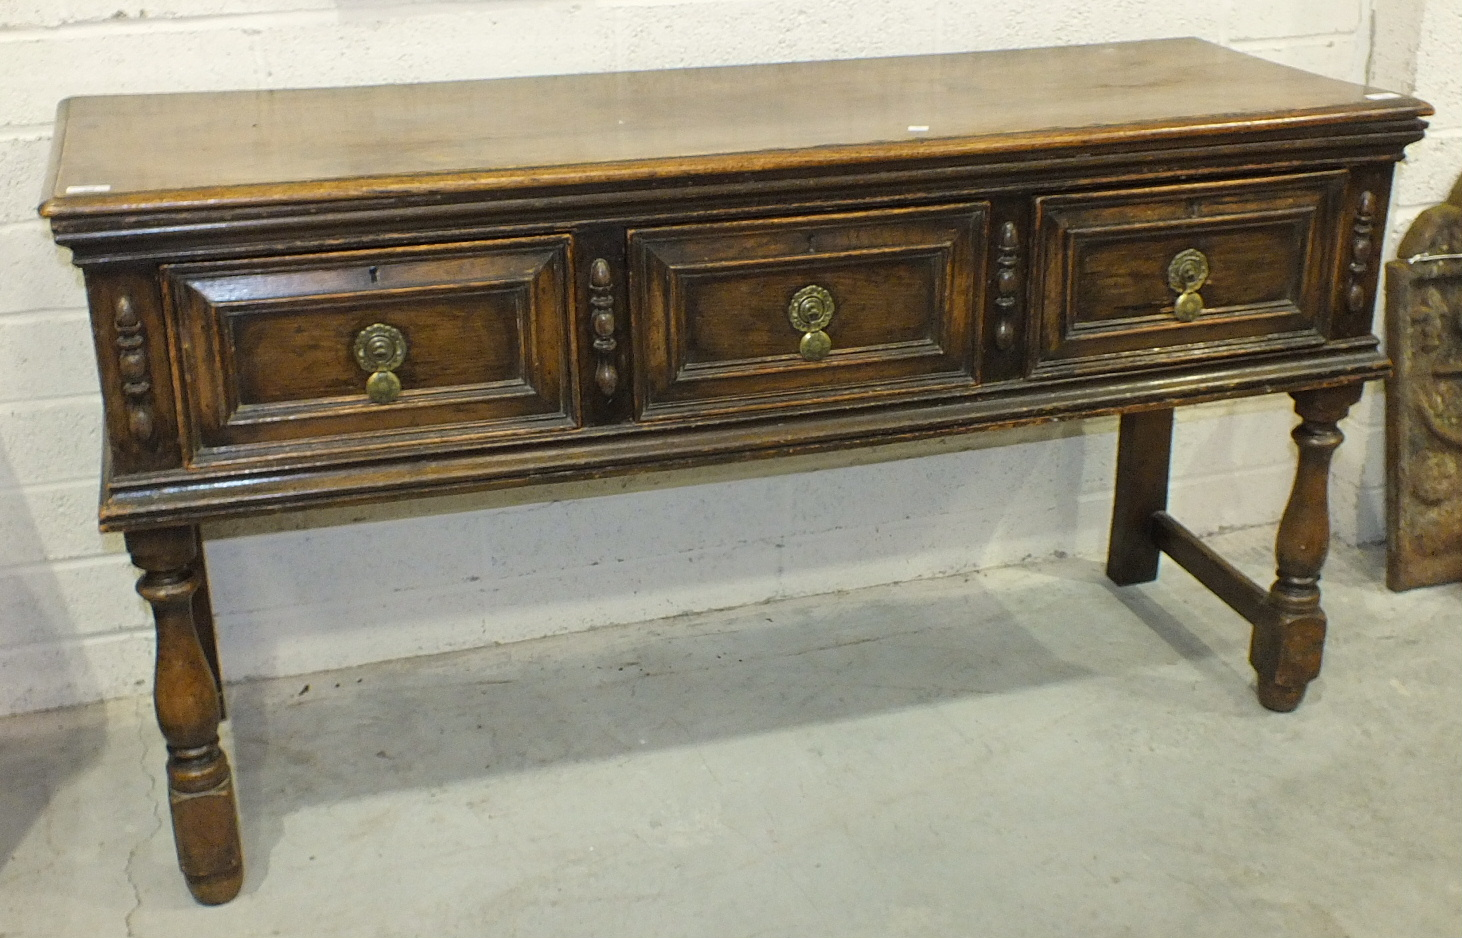 Lot 59 - A late-19th/early-20th century Continental dresser base, the rectangular top with moulded edge,